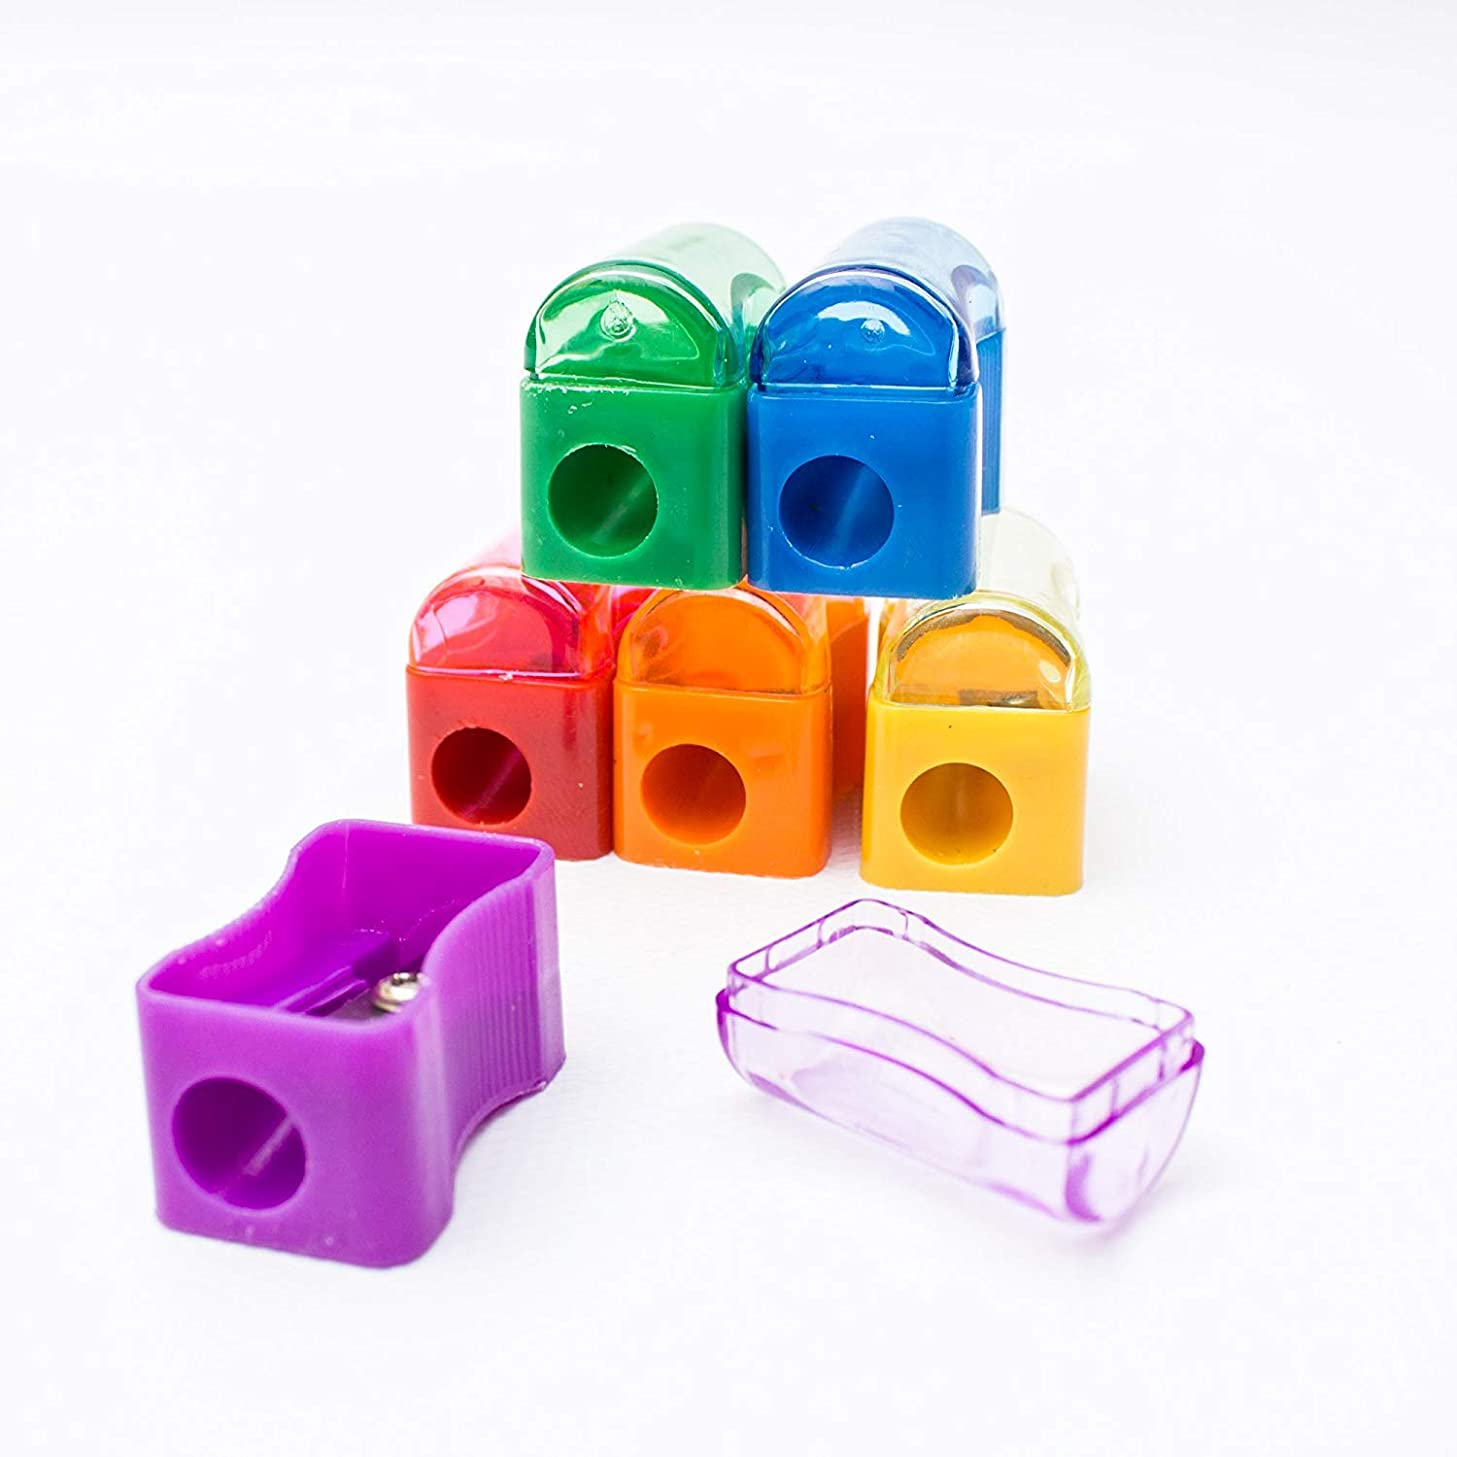 Fun Wave 72 Pack Kids Plastic Manual Pencil Sharpener with Receptacle- Multicolor Assortment- for Home and School - Great for Goodie Bags, Gifts, Give Aways, Office School Supplies